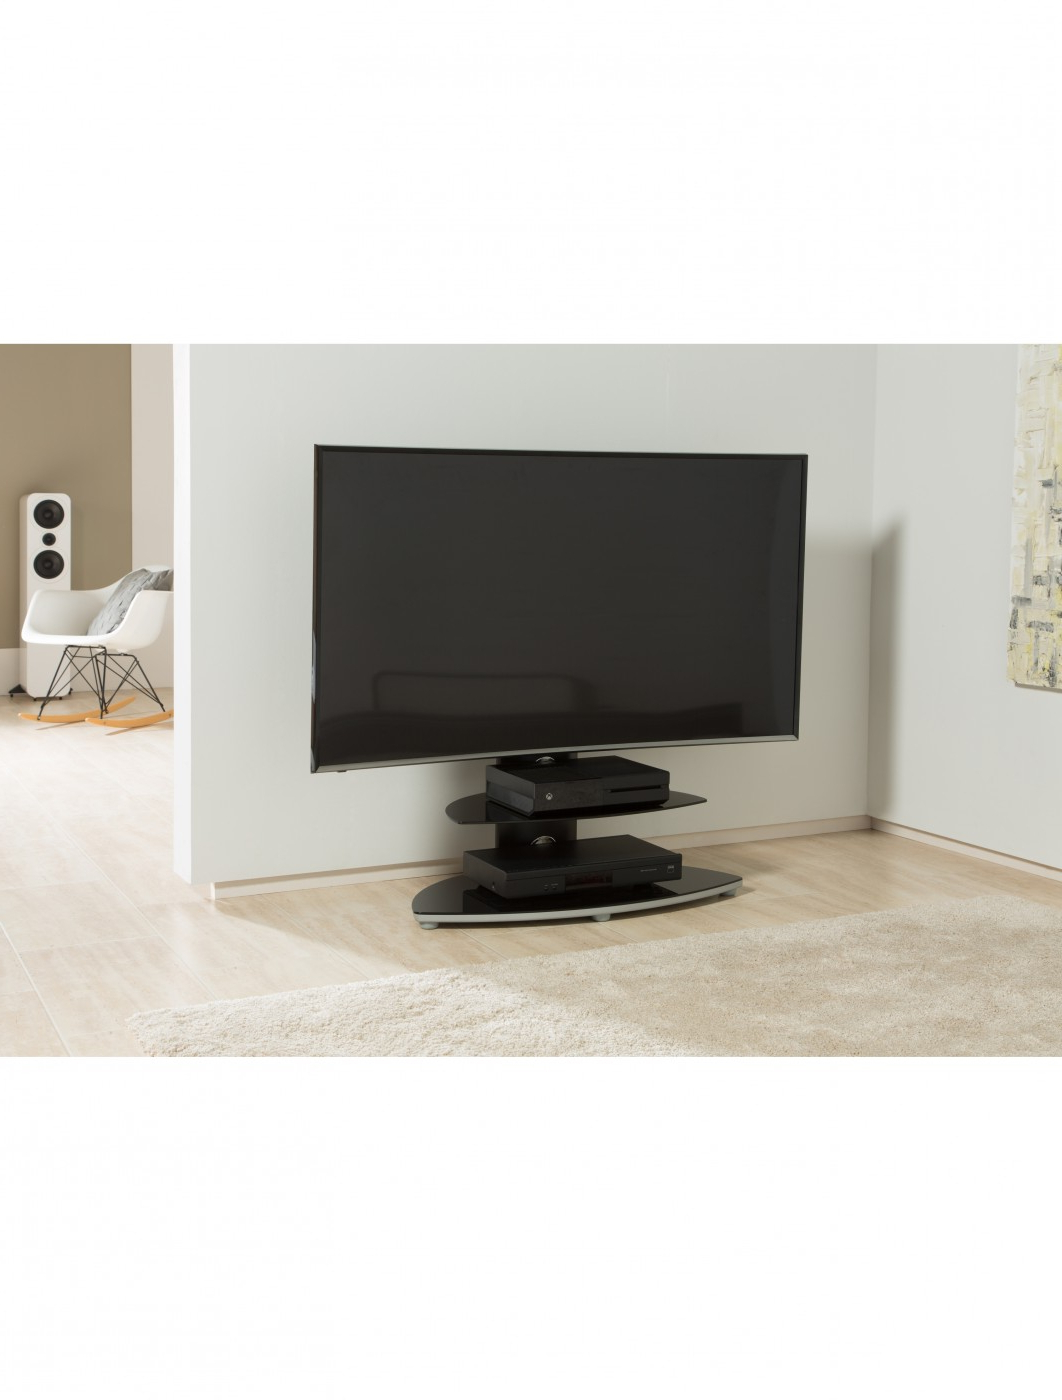 Alphason Osmb800/2 S Osmium Tv Stand | 121 Tv Mounts Pertaining To 57'' Tv Stands With Open Glass Shelves Gray & Black Finsh (View 7 of 20)